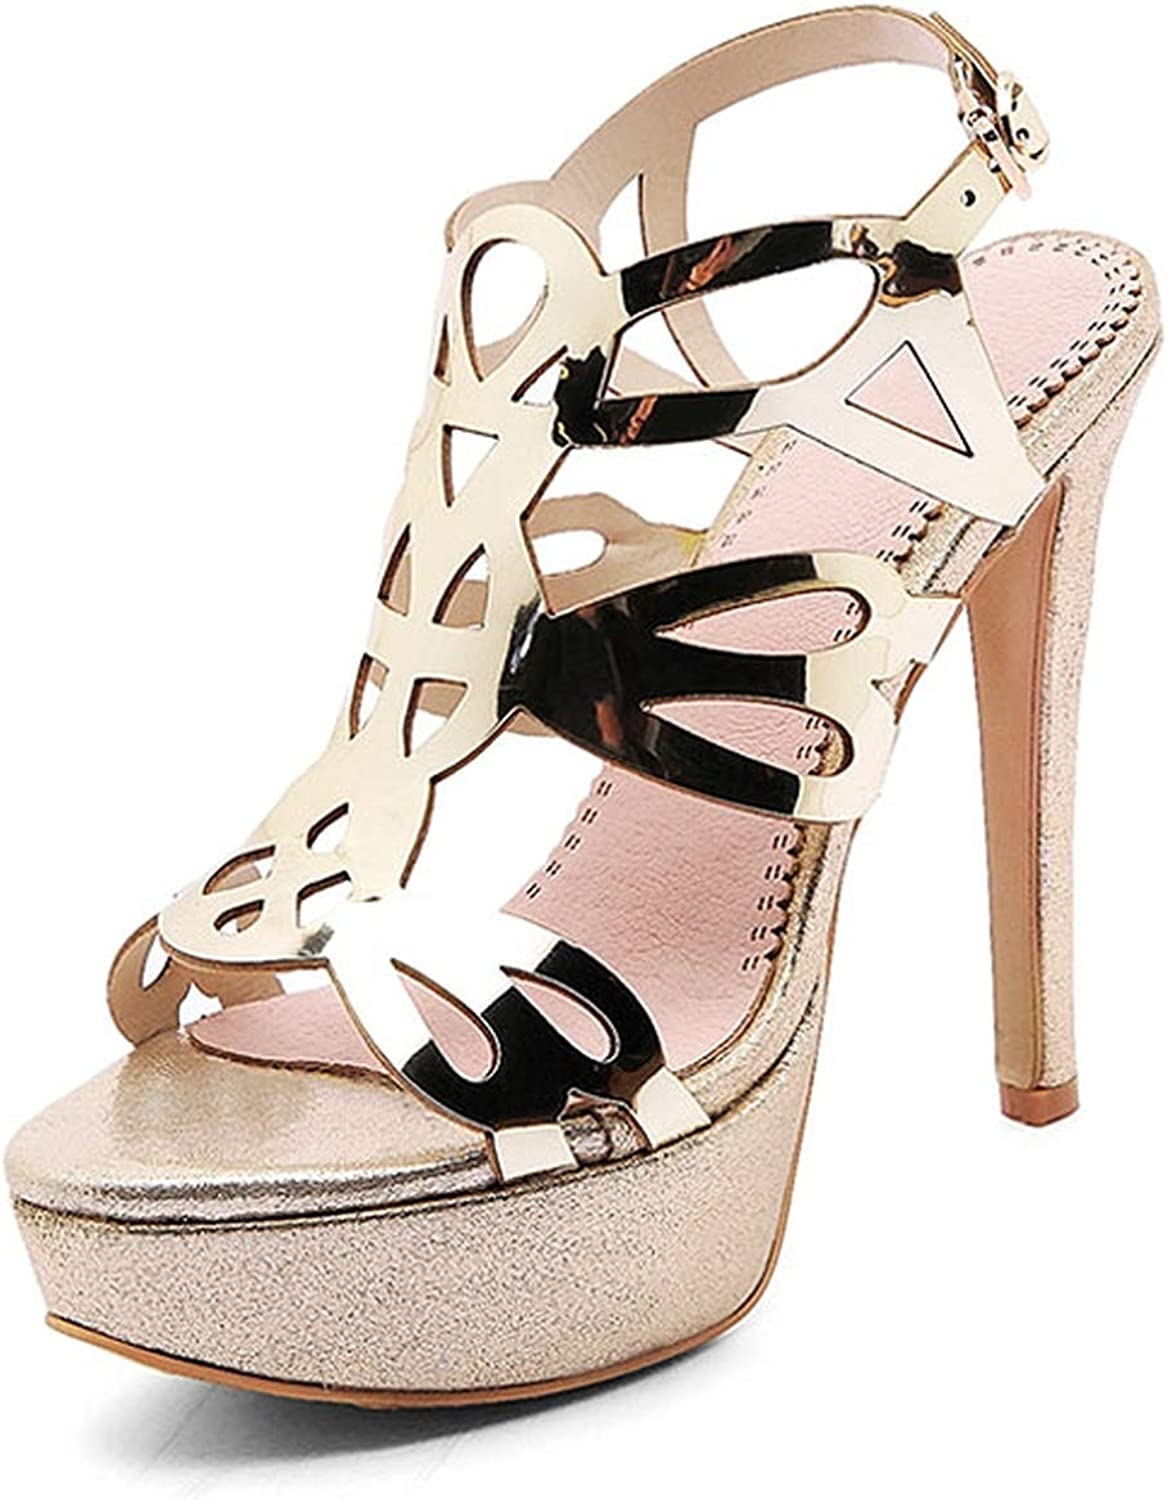 Mature Women Thin High Heels Mesh Buckle Strap Sandals Sexy Wedding shoes Solid Gladiator Sandals shoes women